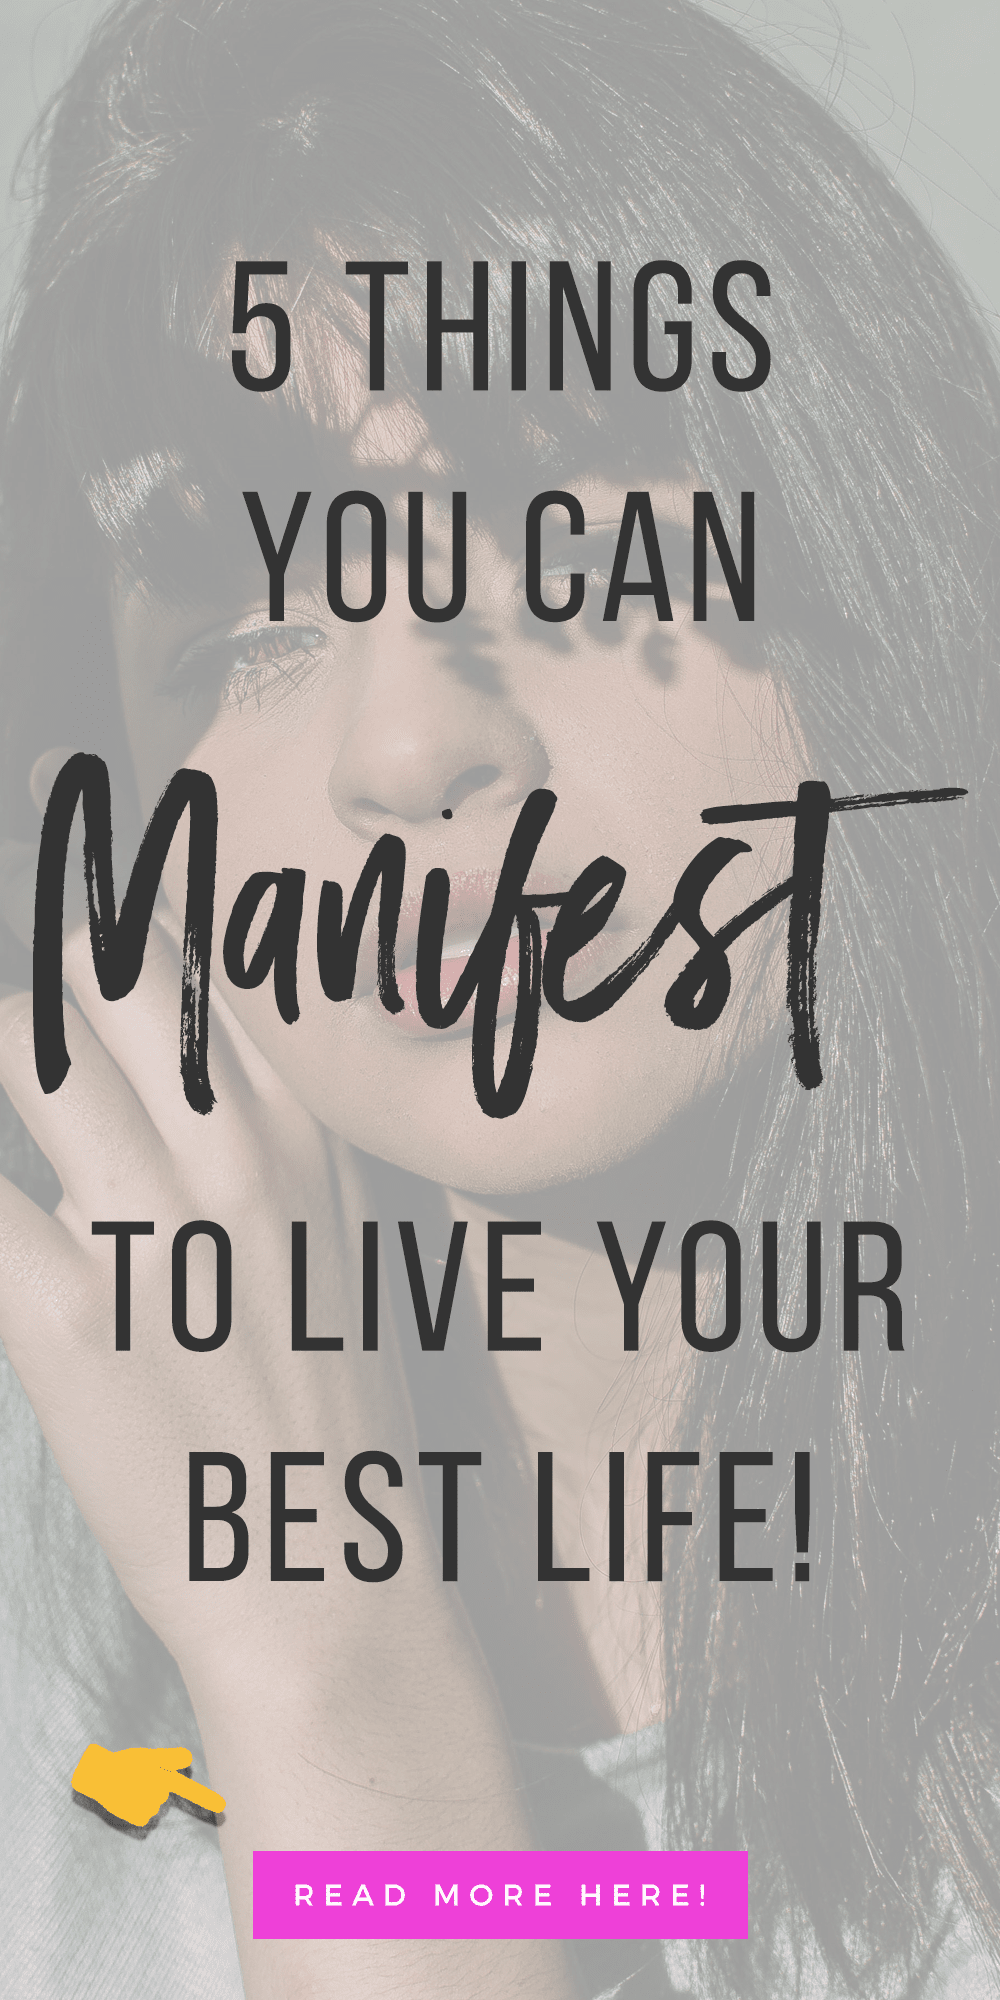 5 Things You Can Manifest To Live Your Best Life